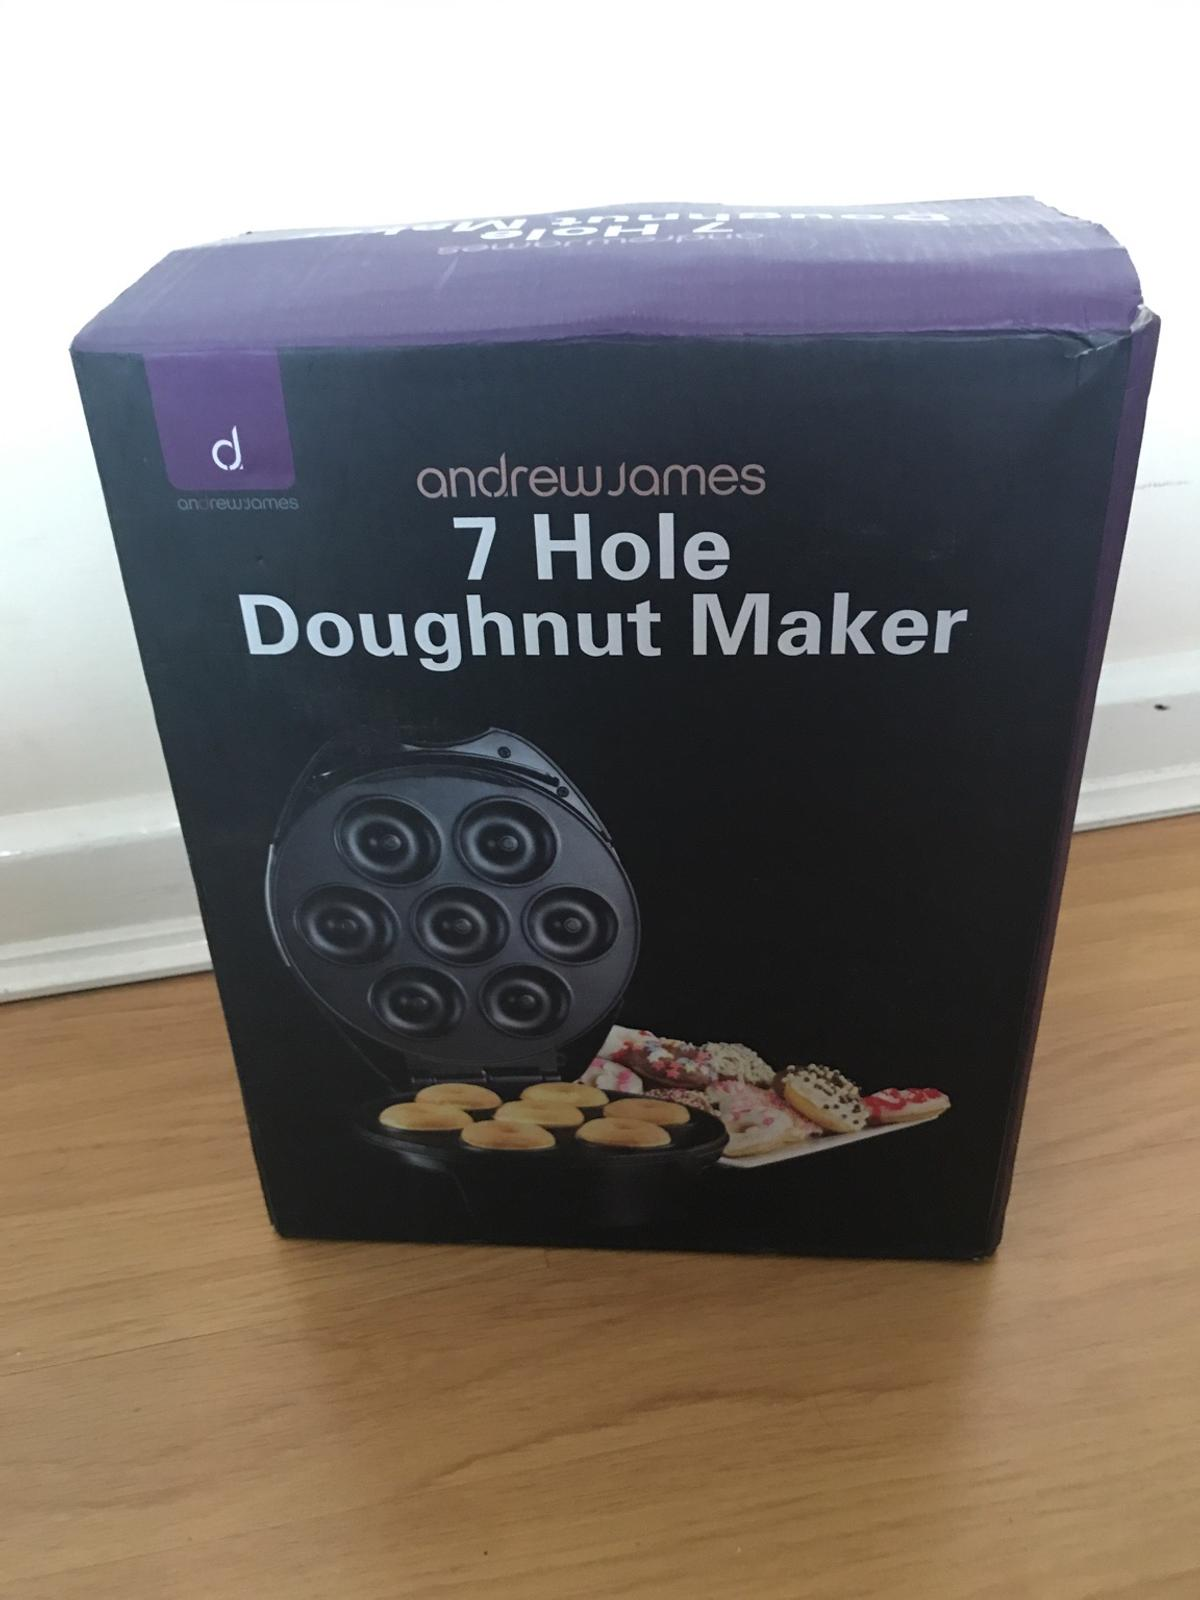 Brand new and only used once. Needed to make space so decided to sell.